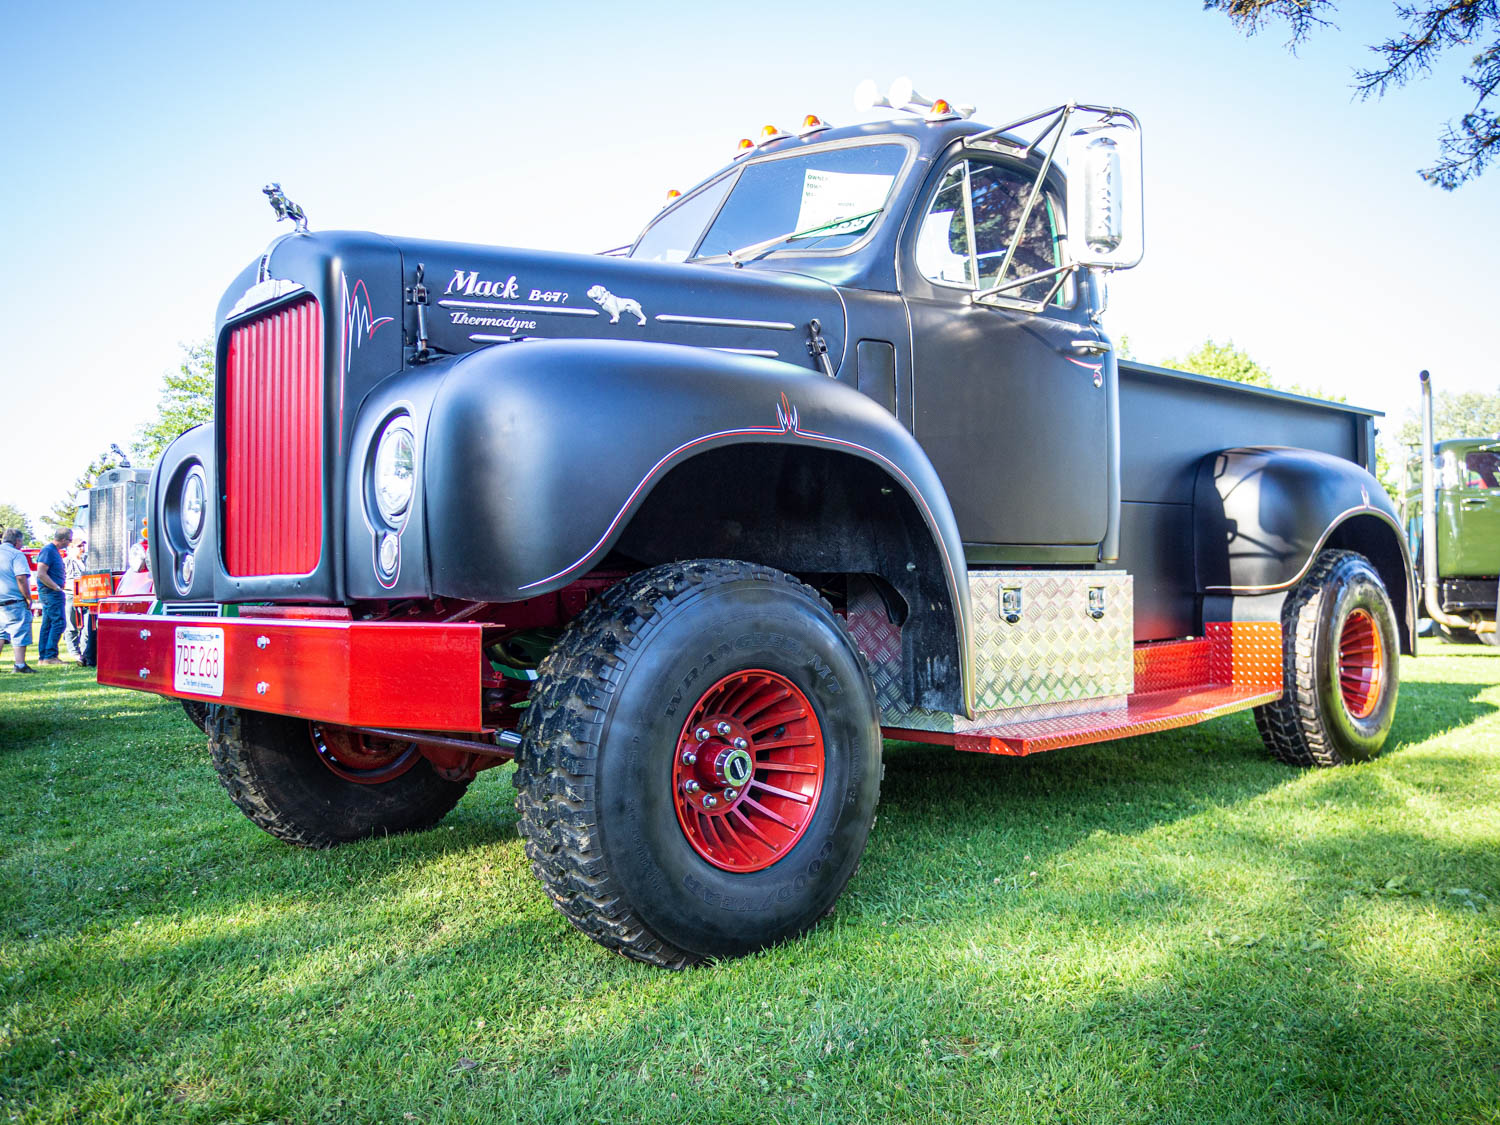 One of the largest pickup trucks you're likely to find, this custom 1962 Mack B67 conversion is powered by a Chevy big-block V-8.